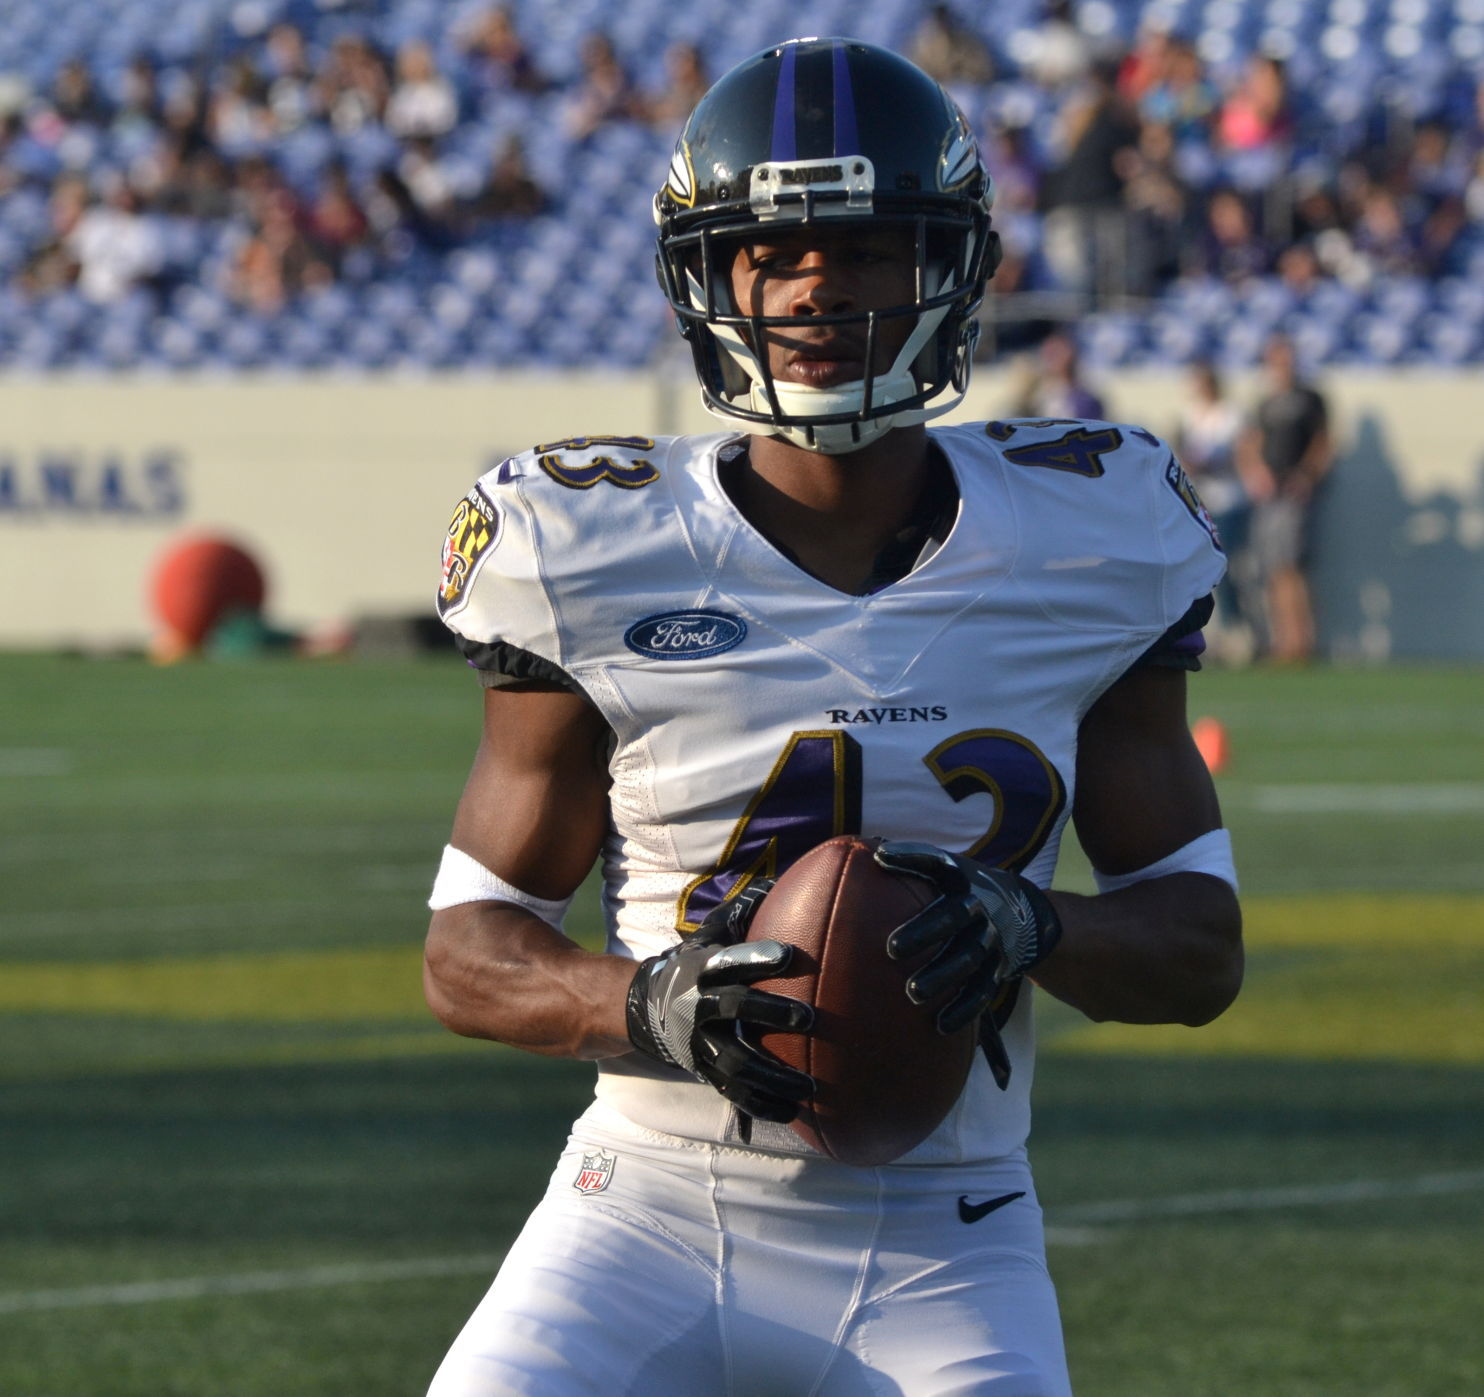 Ravens undrafted rookie Jaylen Hill seizes opportunity of first ...